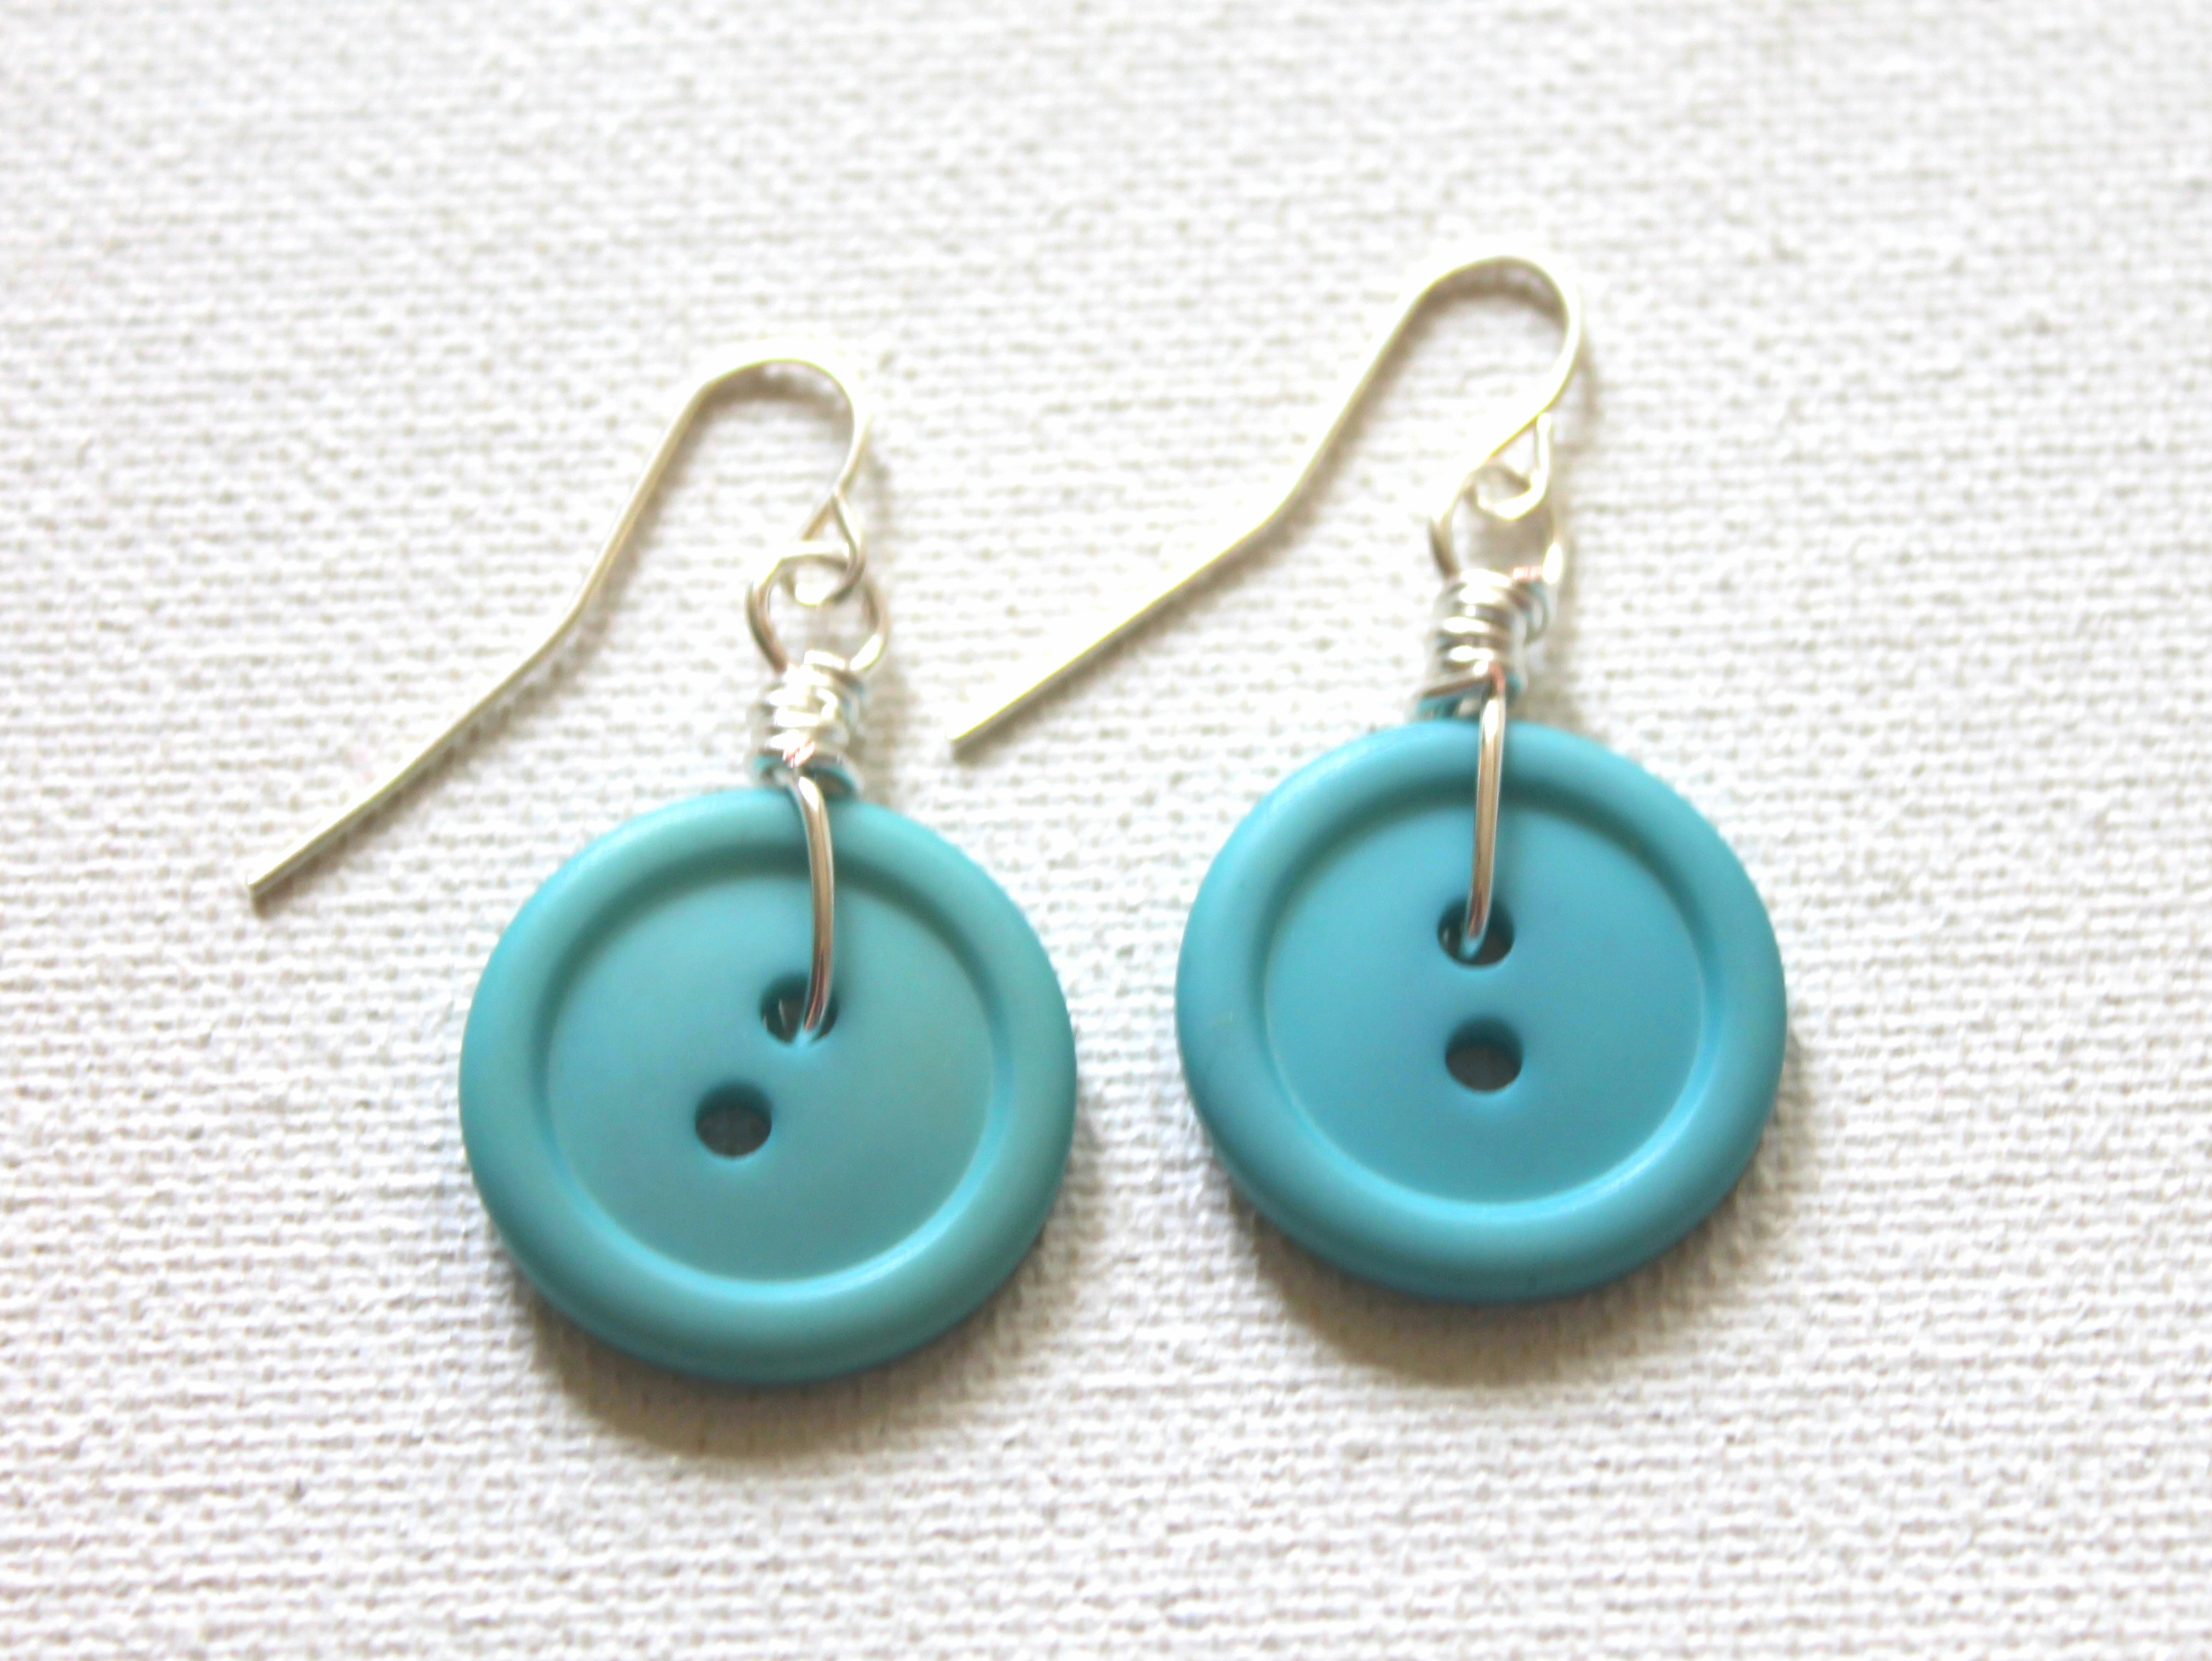 Button Earrings | Emerging Creatively Jewelry Tutorials